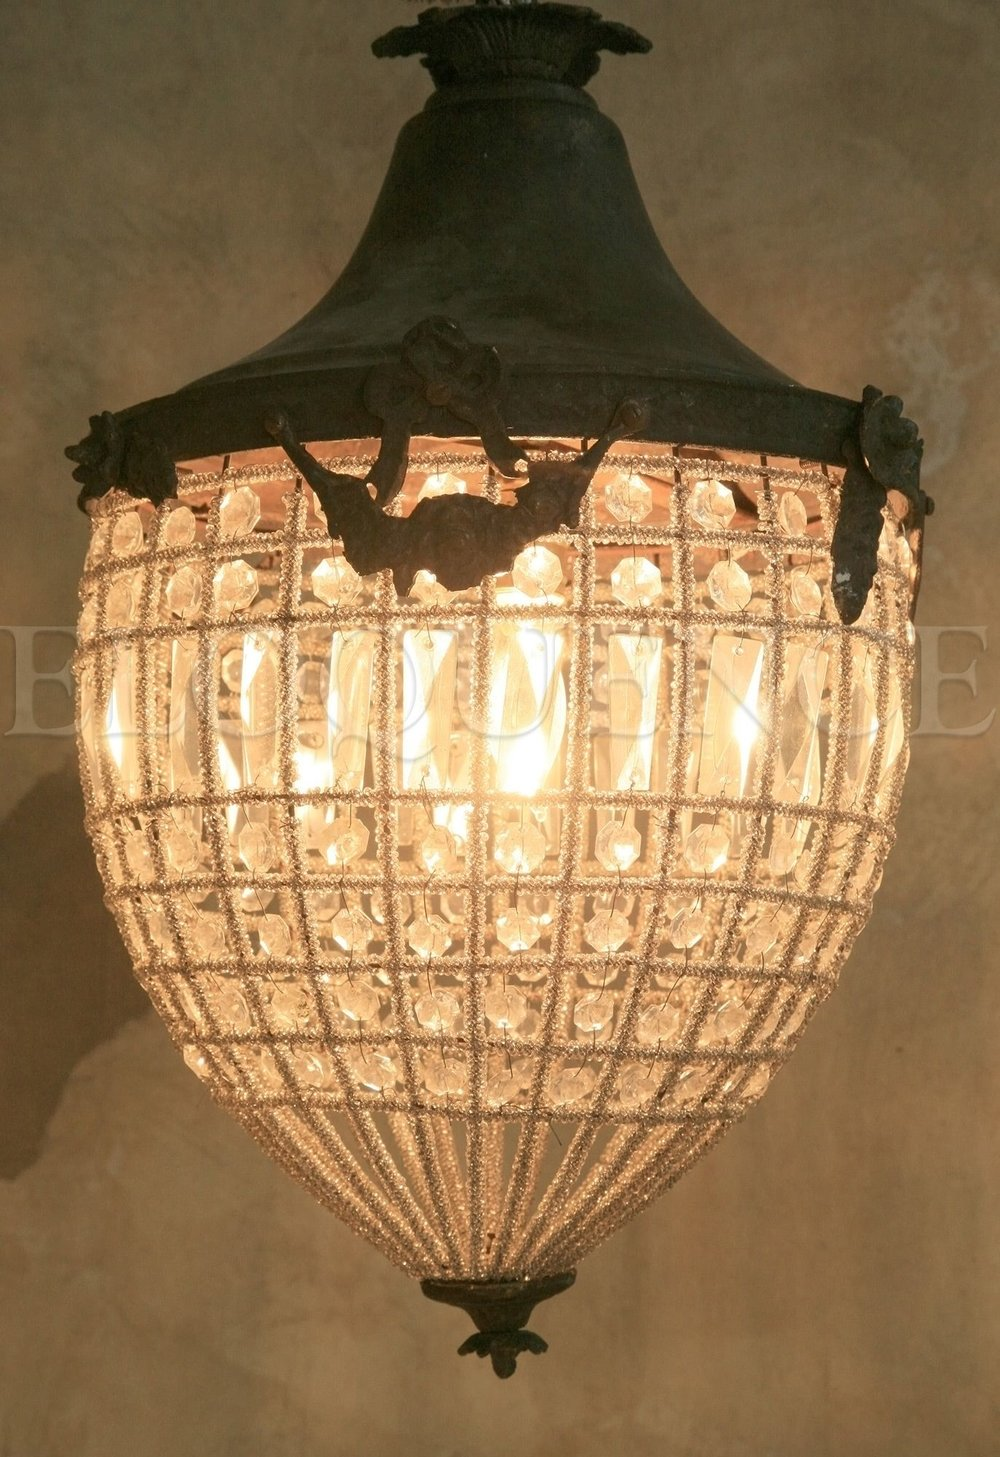 Antique Reproduction chandelier.jpg